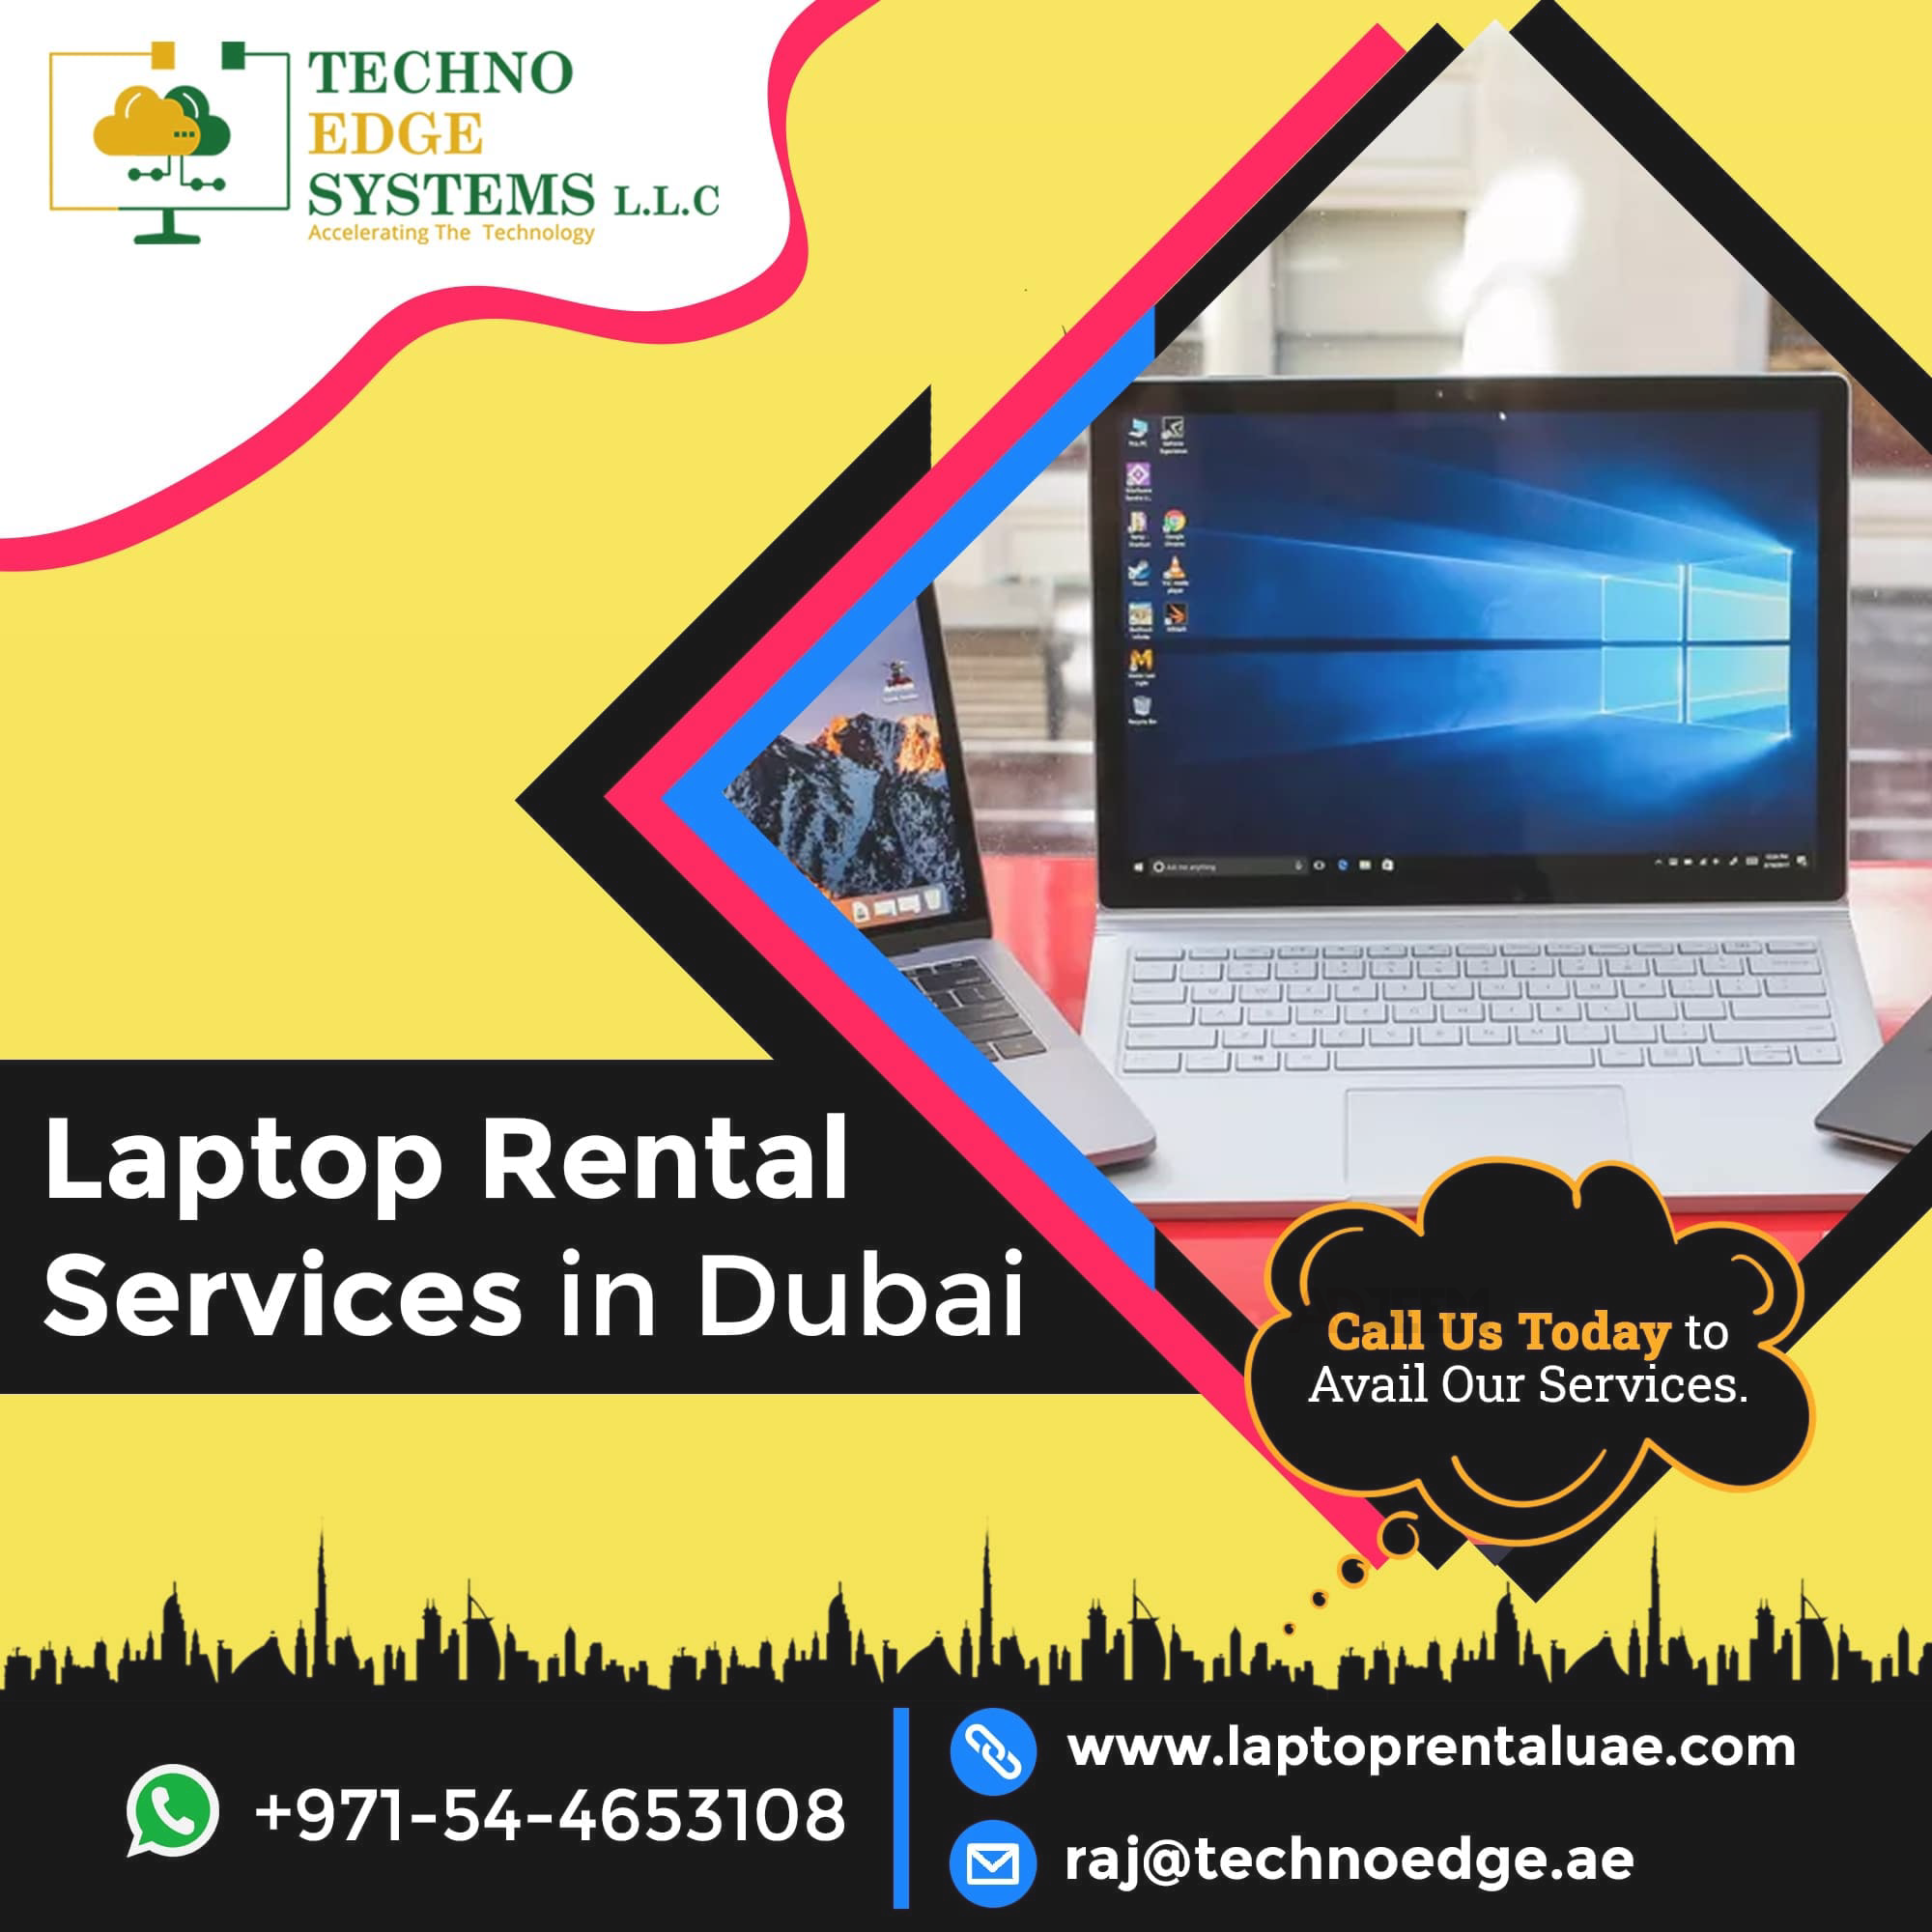 Make A Profitable Business With Laptop Rental In Dubai